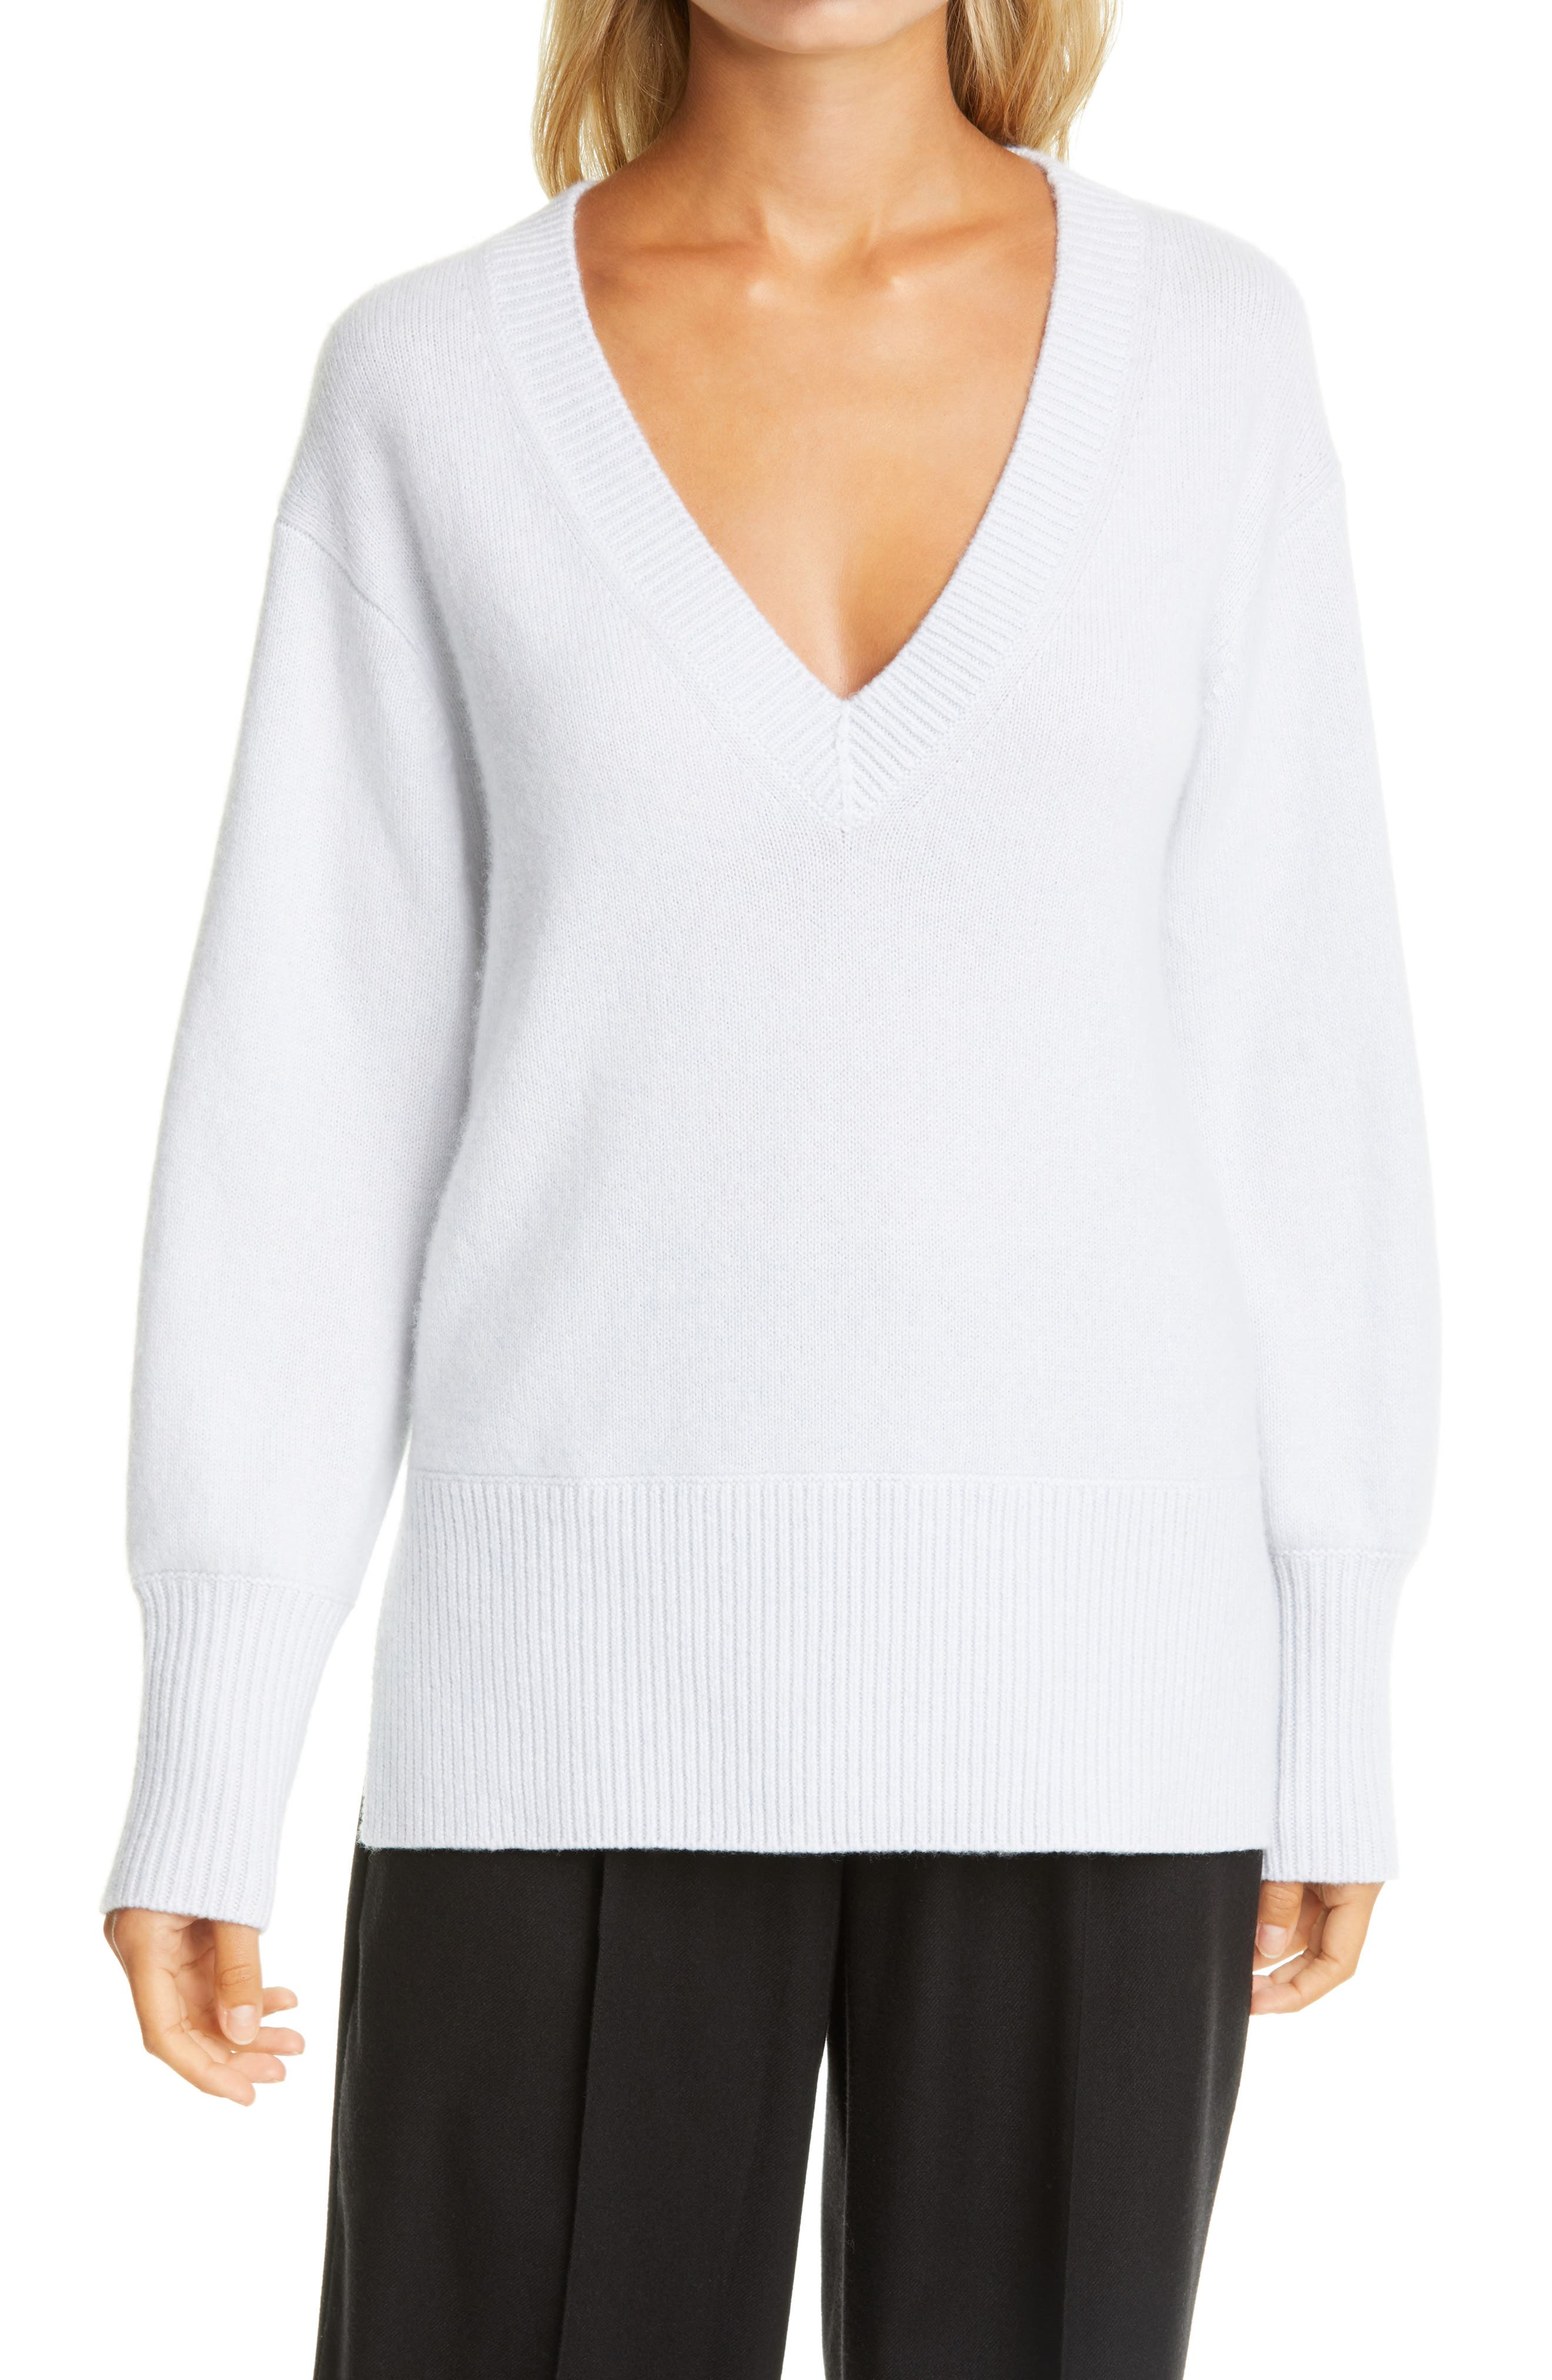 A ribbed V-neck, hem and cuffs trim an oversized cashmere sweater with a split hem for easy movement. Style Name: Vince Ribbed V-Neck Cashmere Tunic Sweater. Style Number: 6055826 1. Available in stores.